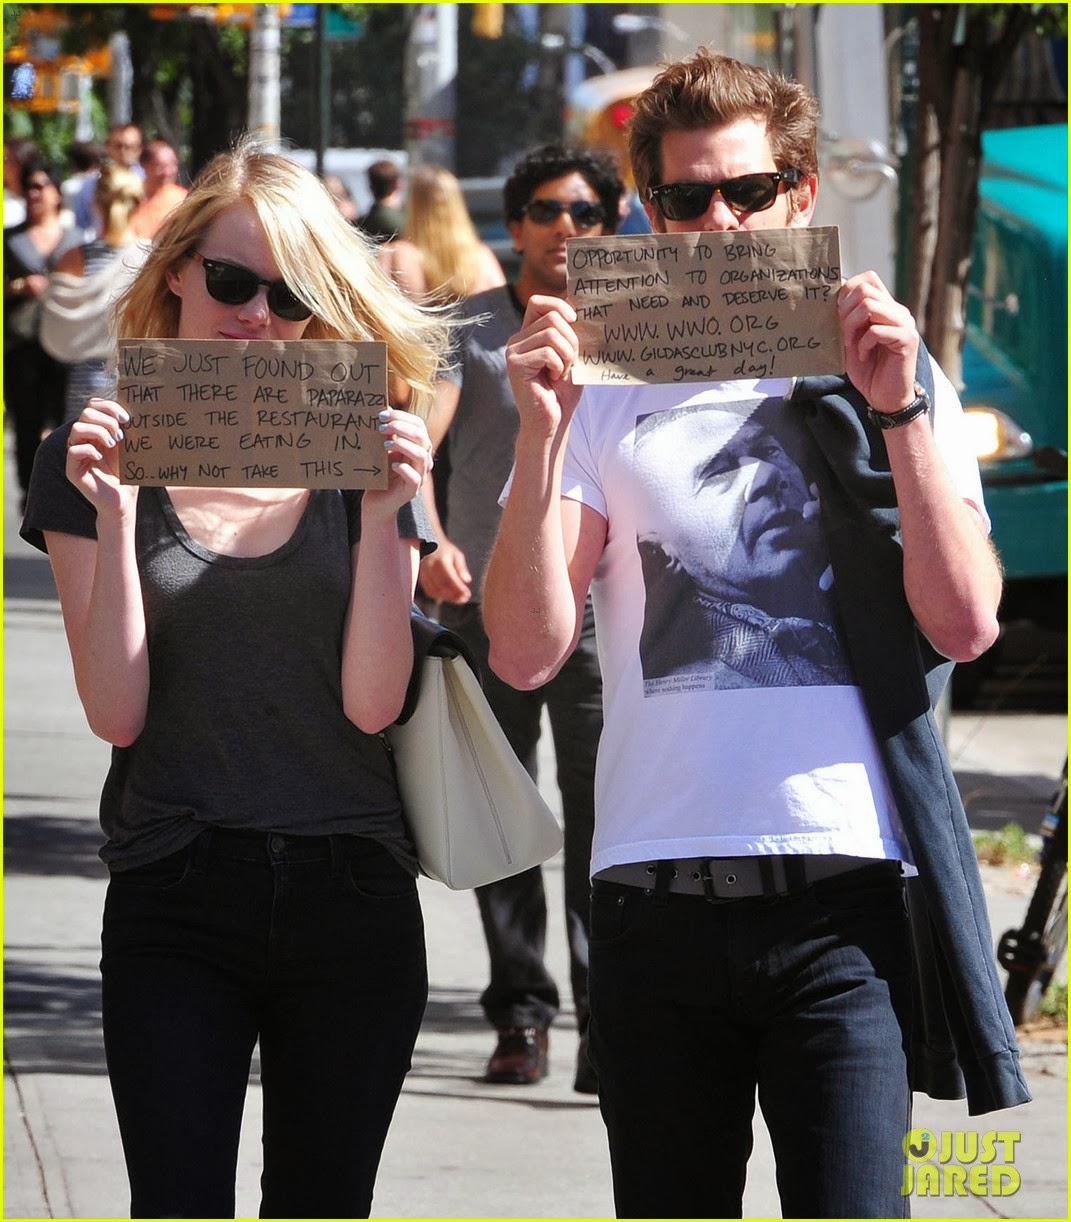 http://www.justjared.com/photo-gallery/2722392/emma-stone-andrew-garfield-promote-charities-with-handmade-signs-08/